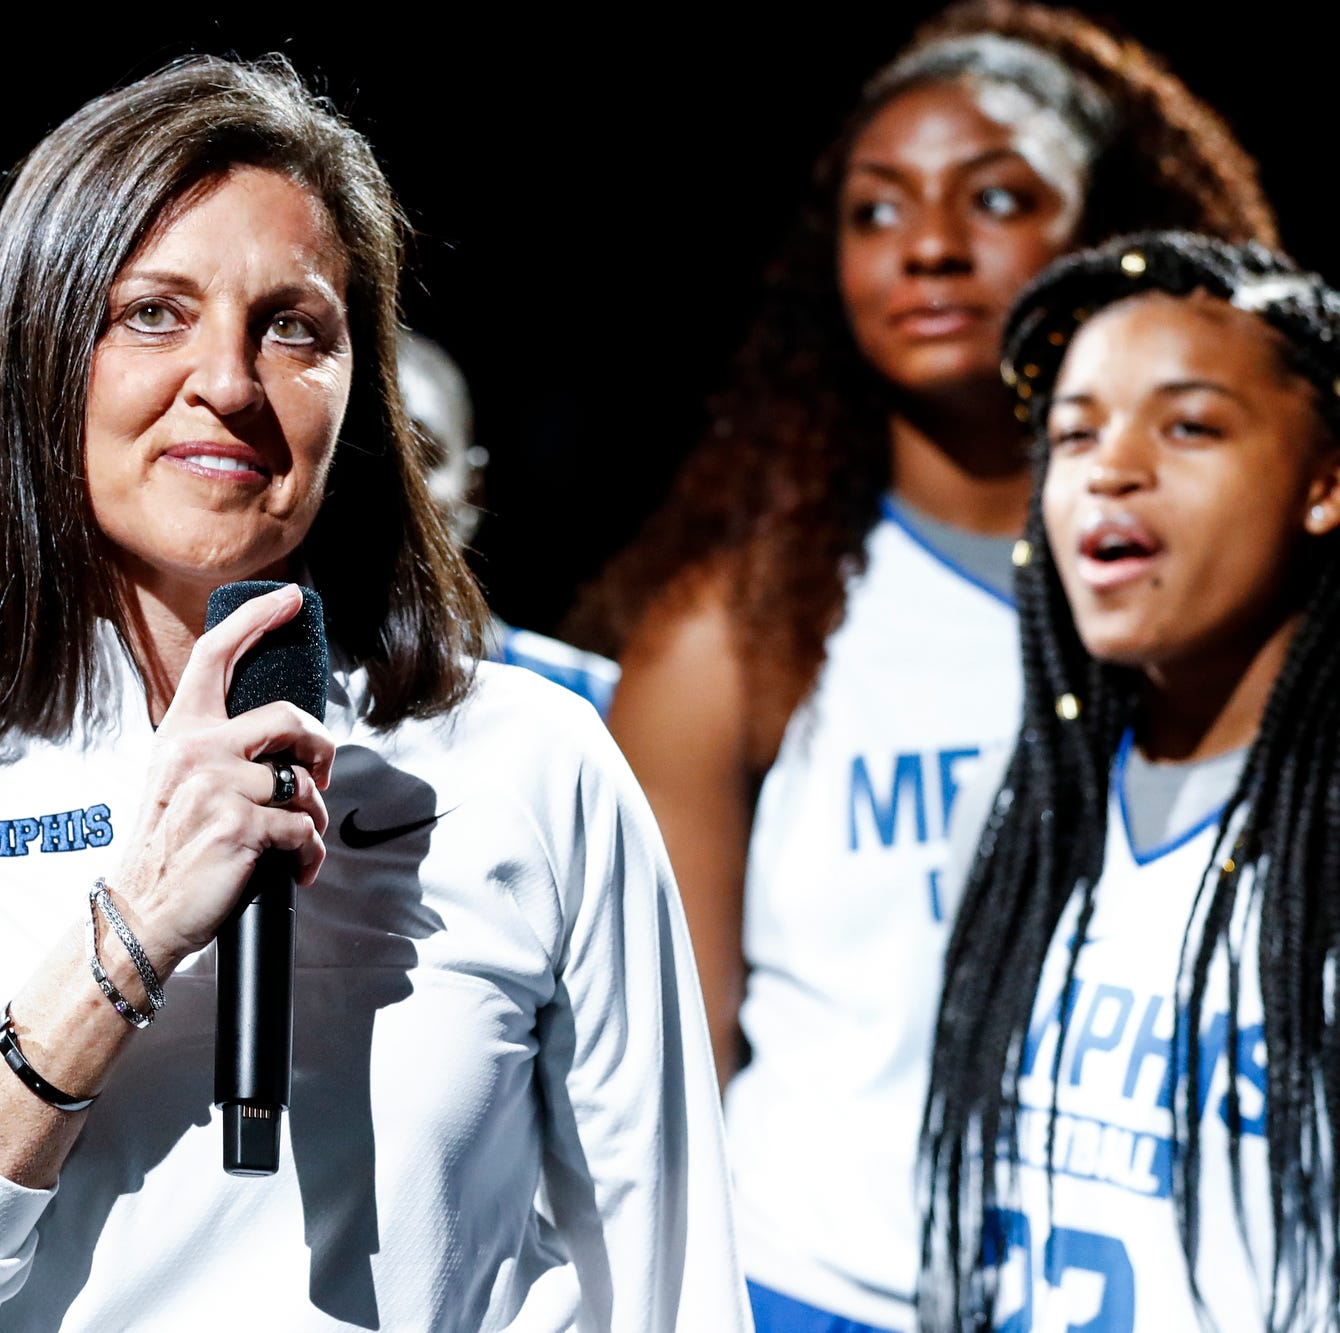 Memphis extends women's basketball coach Melissa McFerrin after 3 straight losing seasons